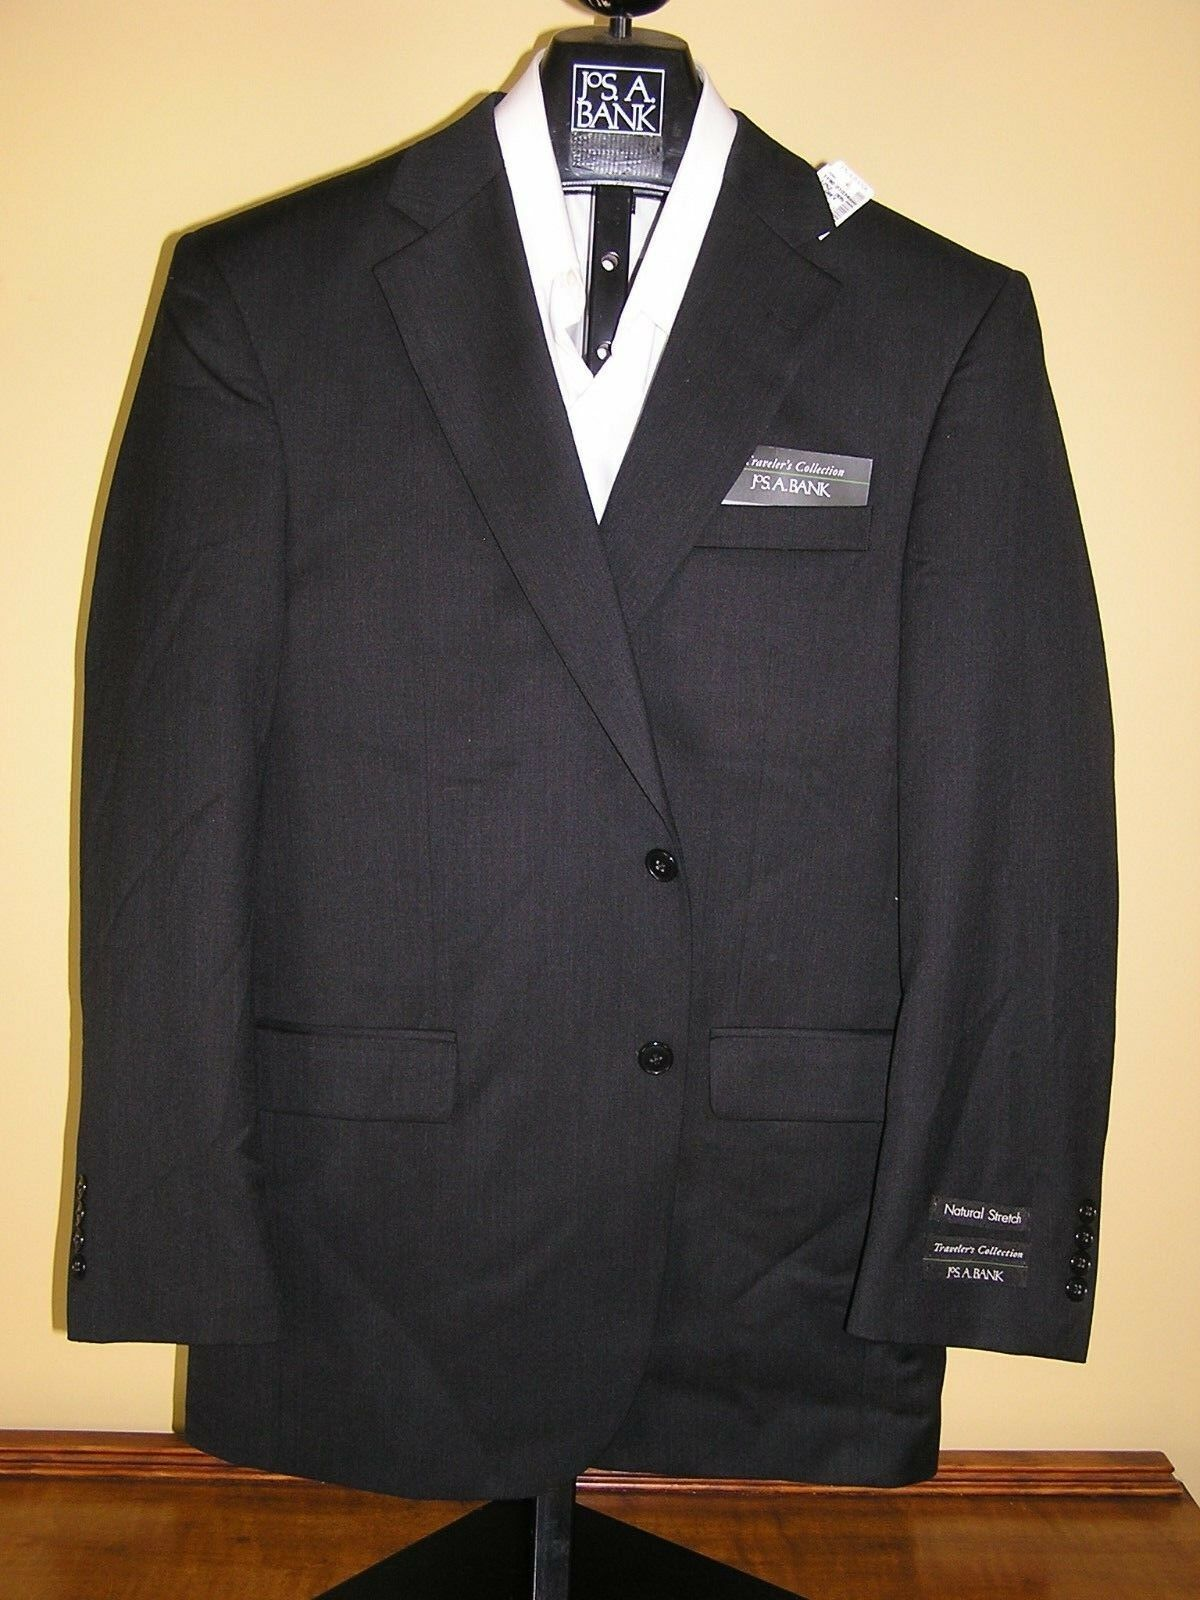 795 new Jos A Bank Traveler solid dark  Grau suit 37 R 31 W Regular fit pleated